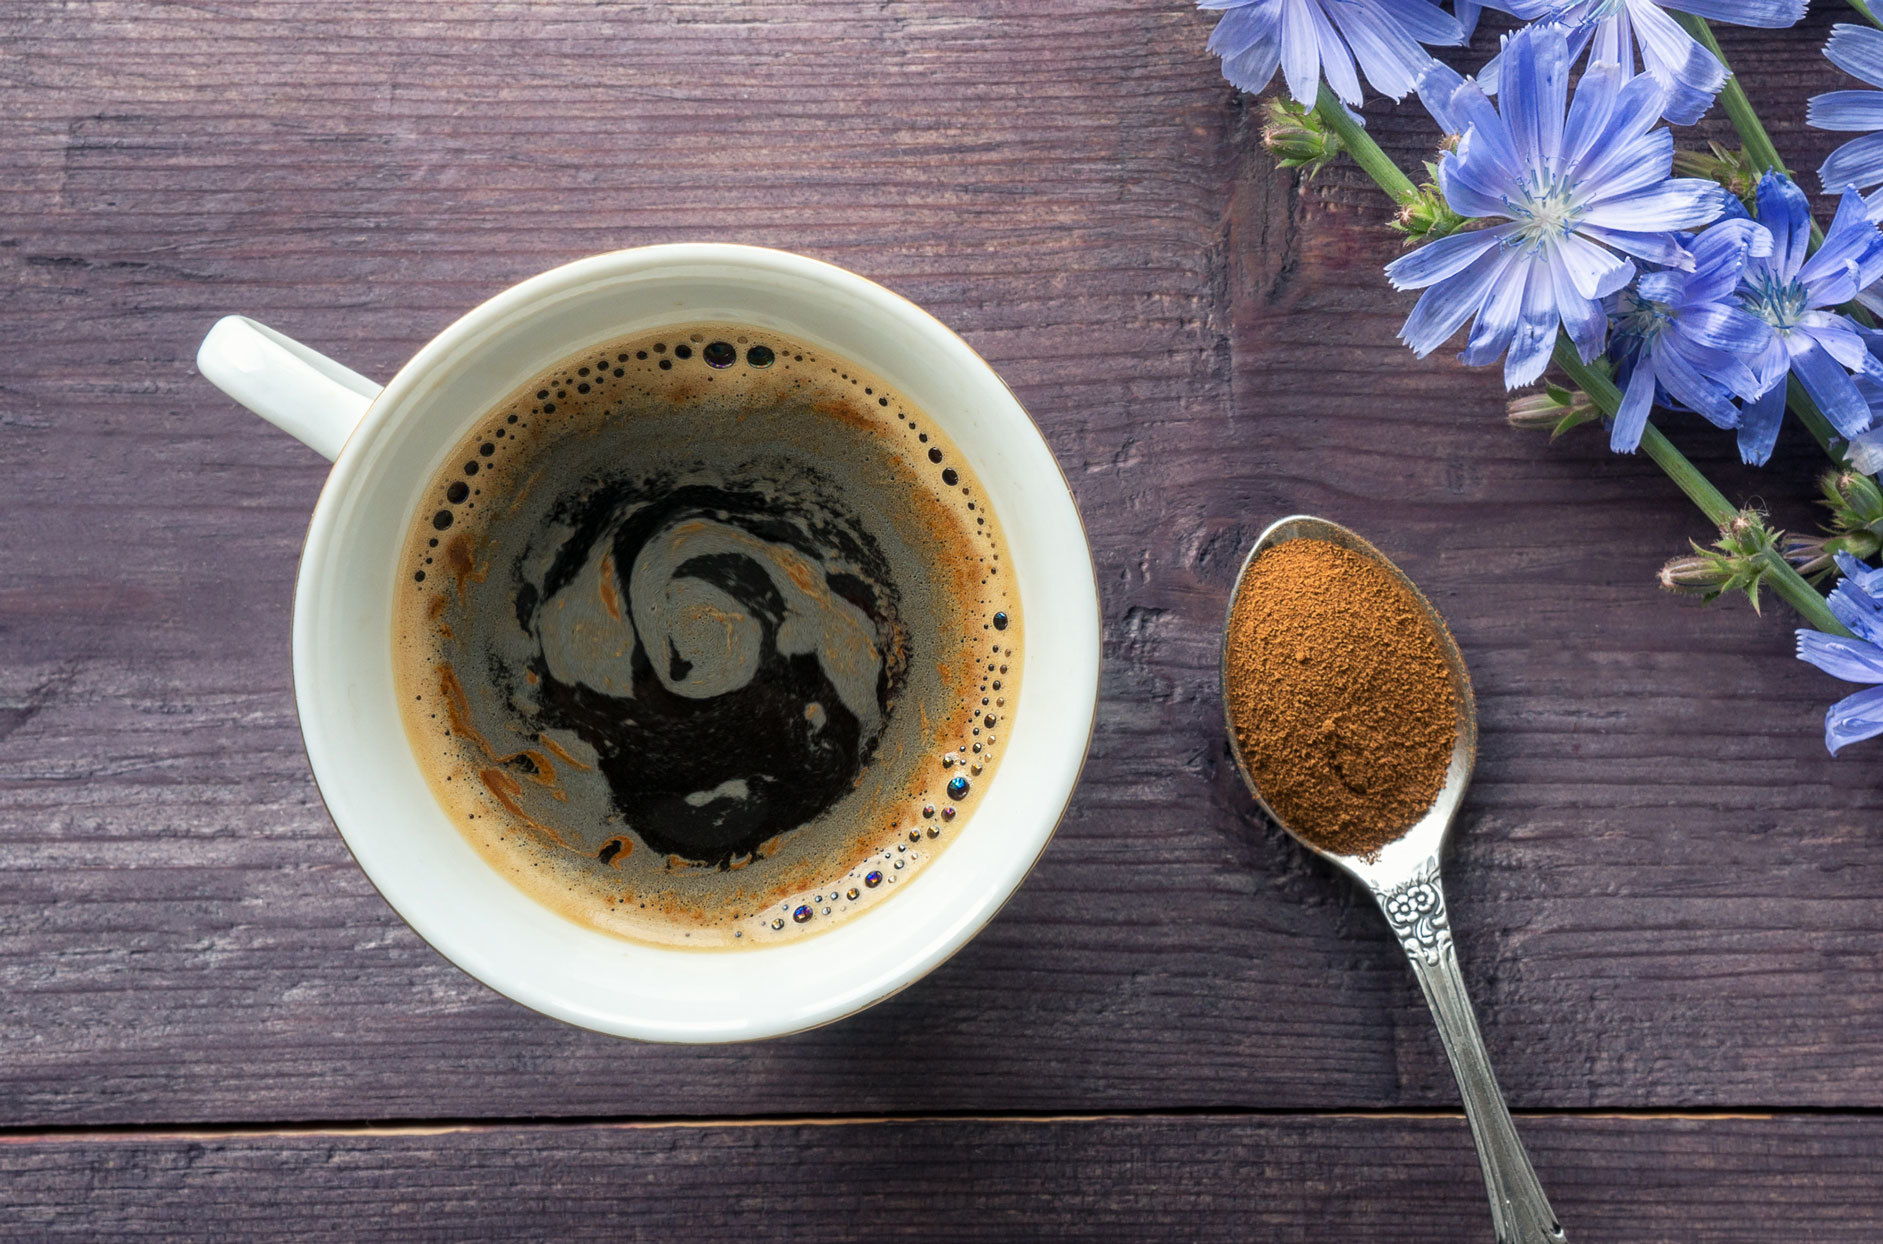 chicory coffee in a white mug on wooden background